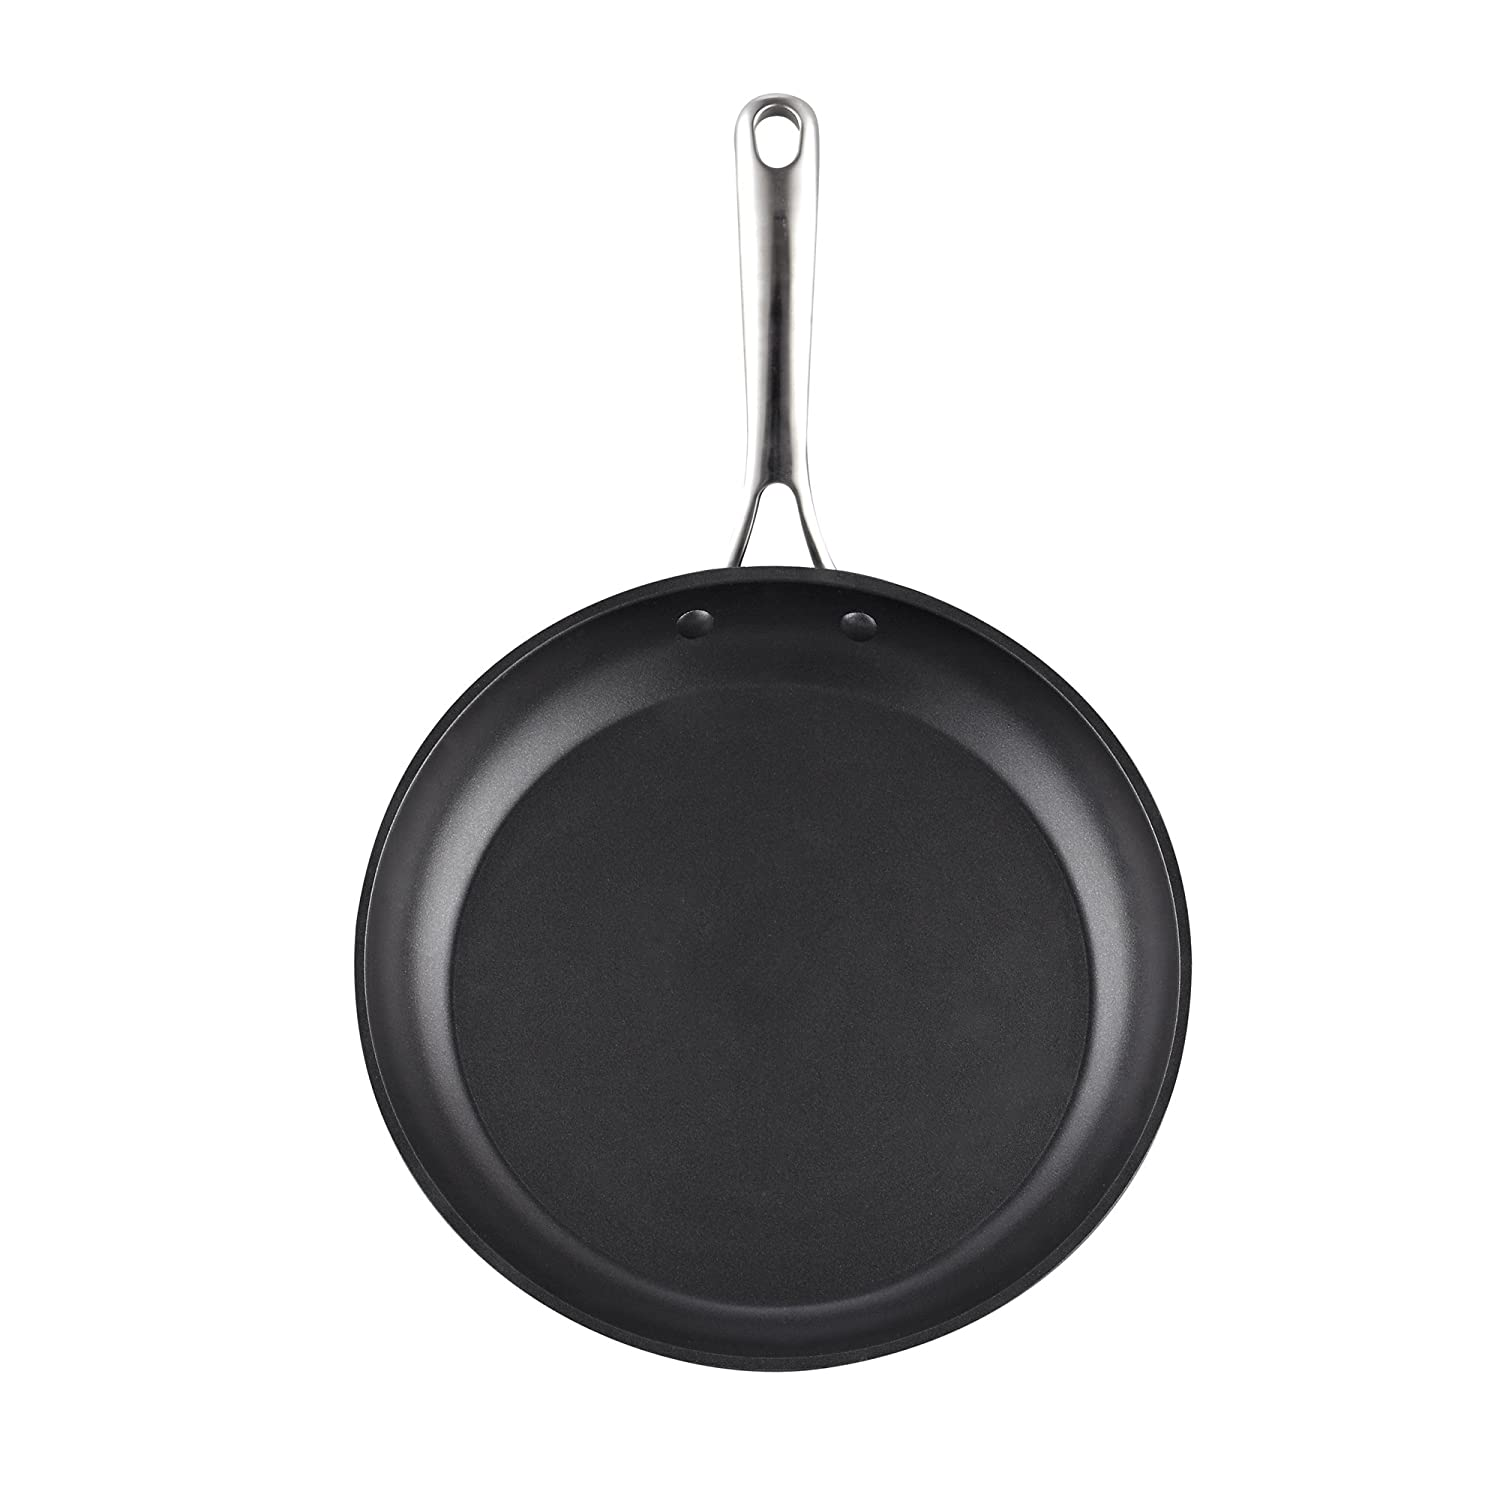 Cooks Standard 02569 8-Inch//20cm Nonstick Hard Black Anodized Fry Saute Omelet Pan 8-inch,